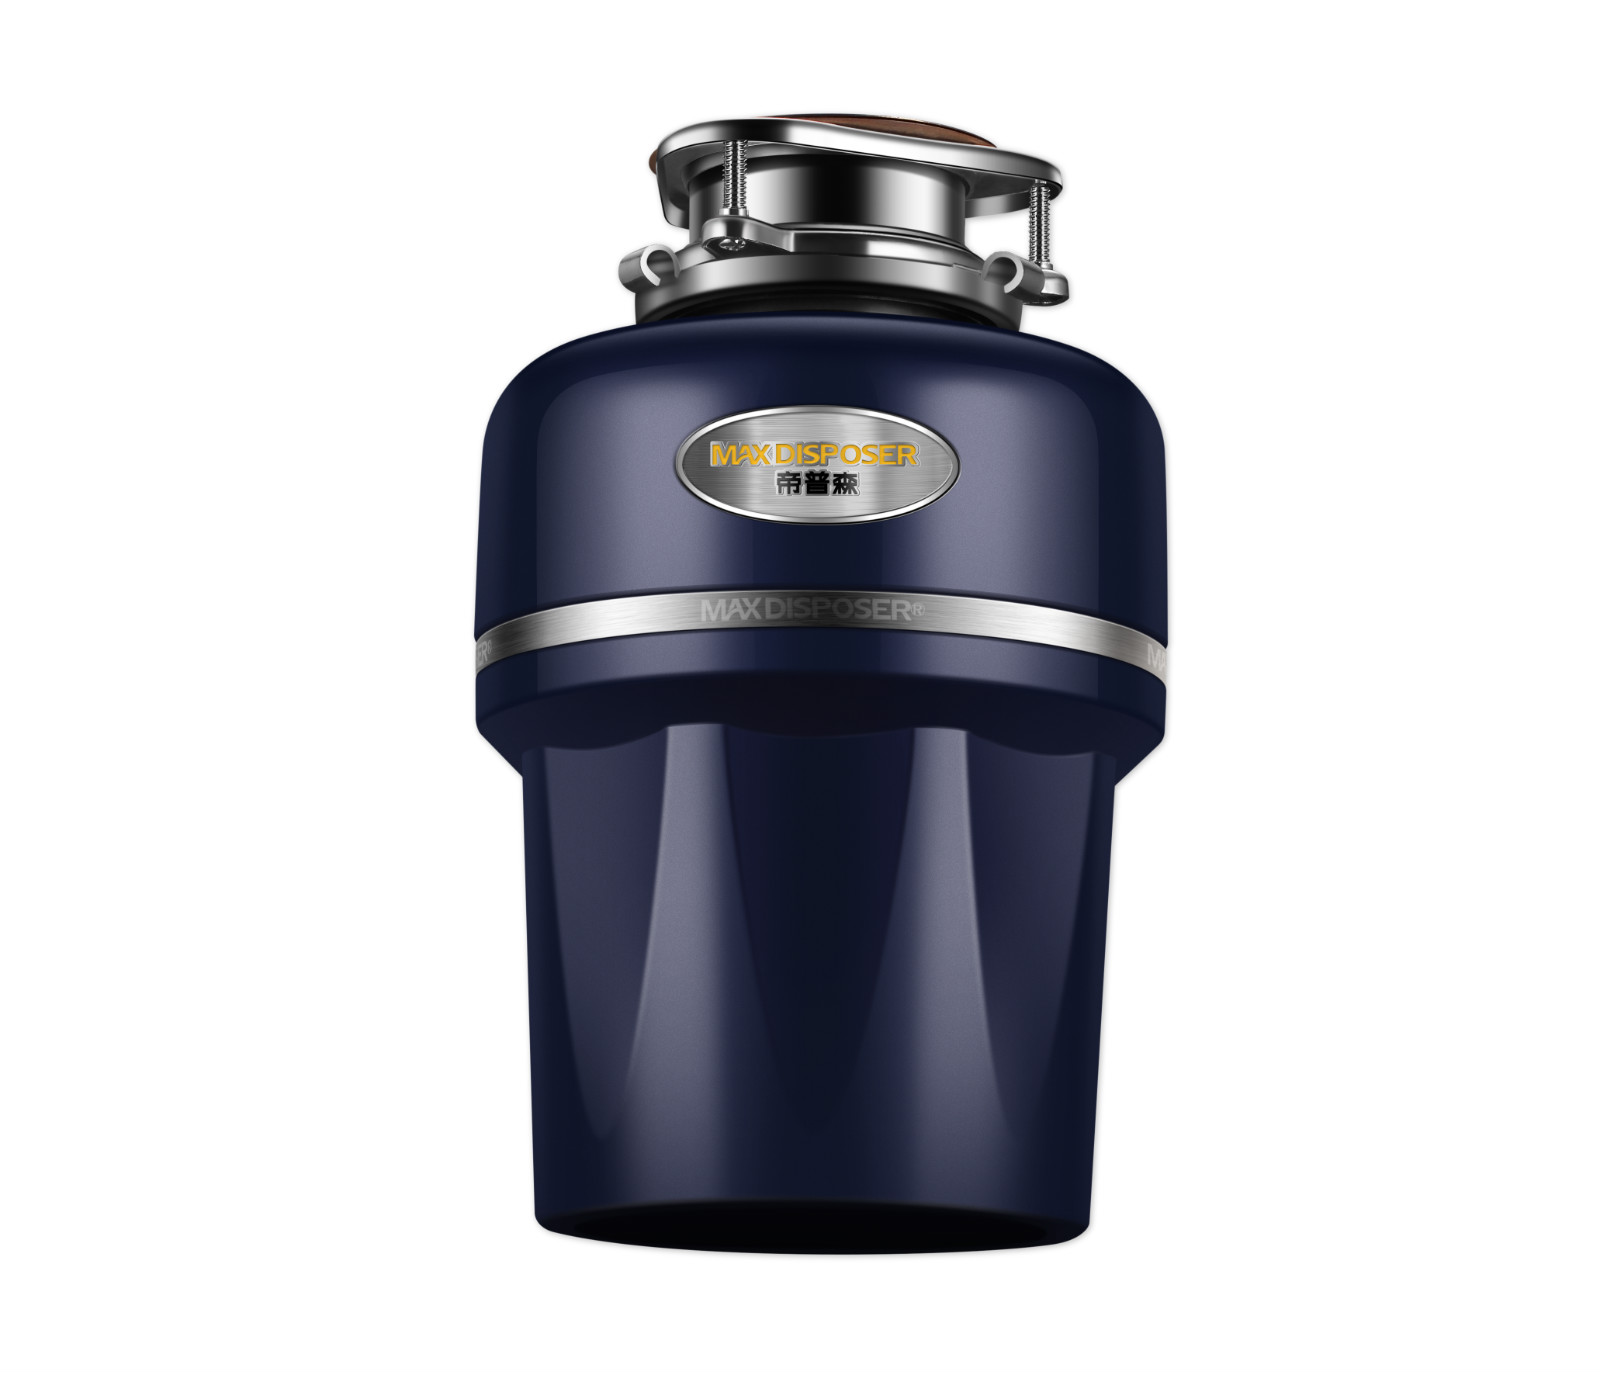 Chengdu professional waste disposer supply service is first